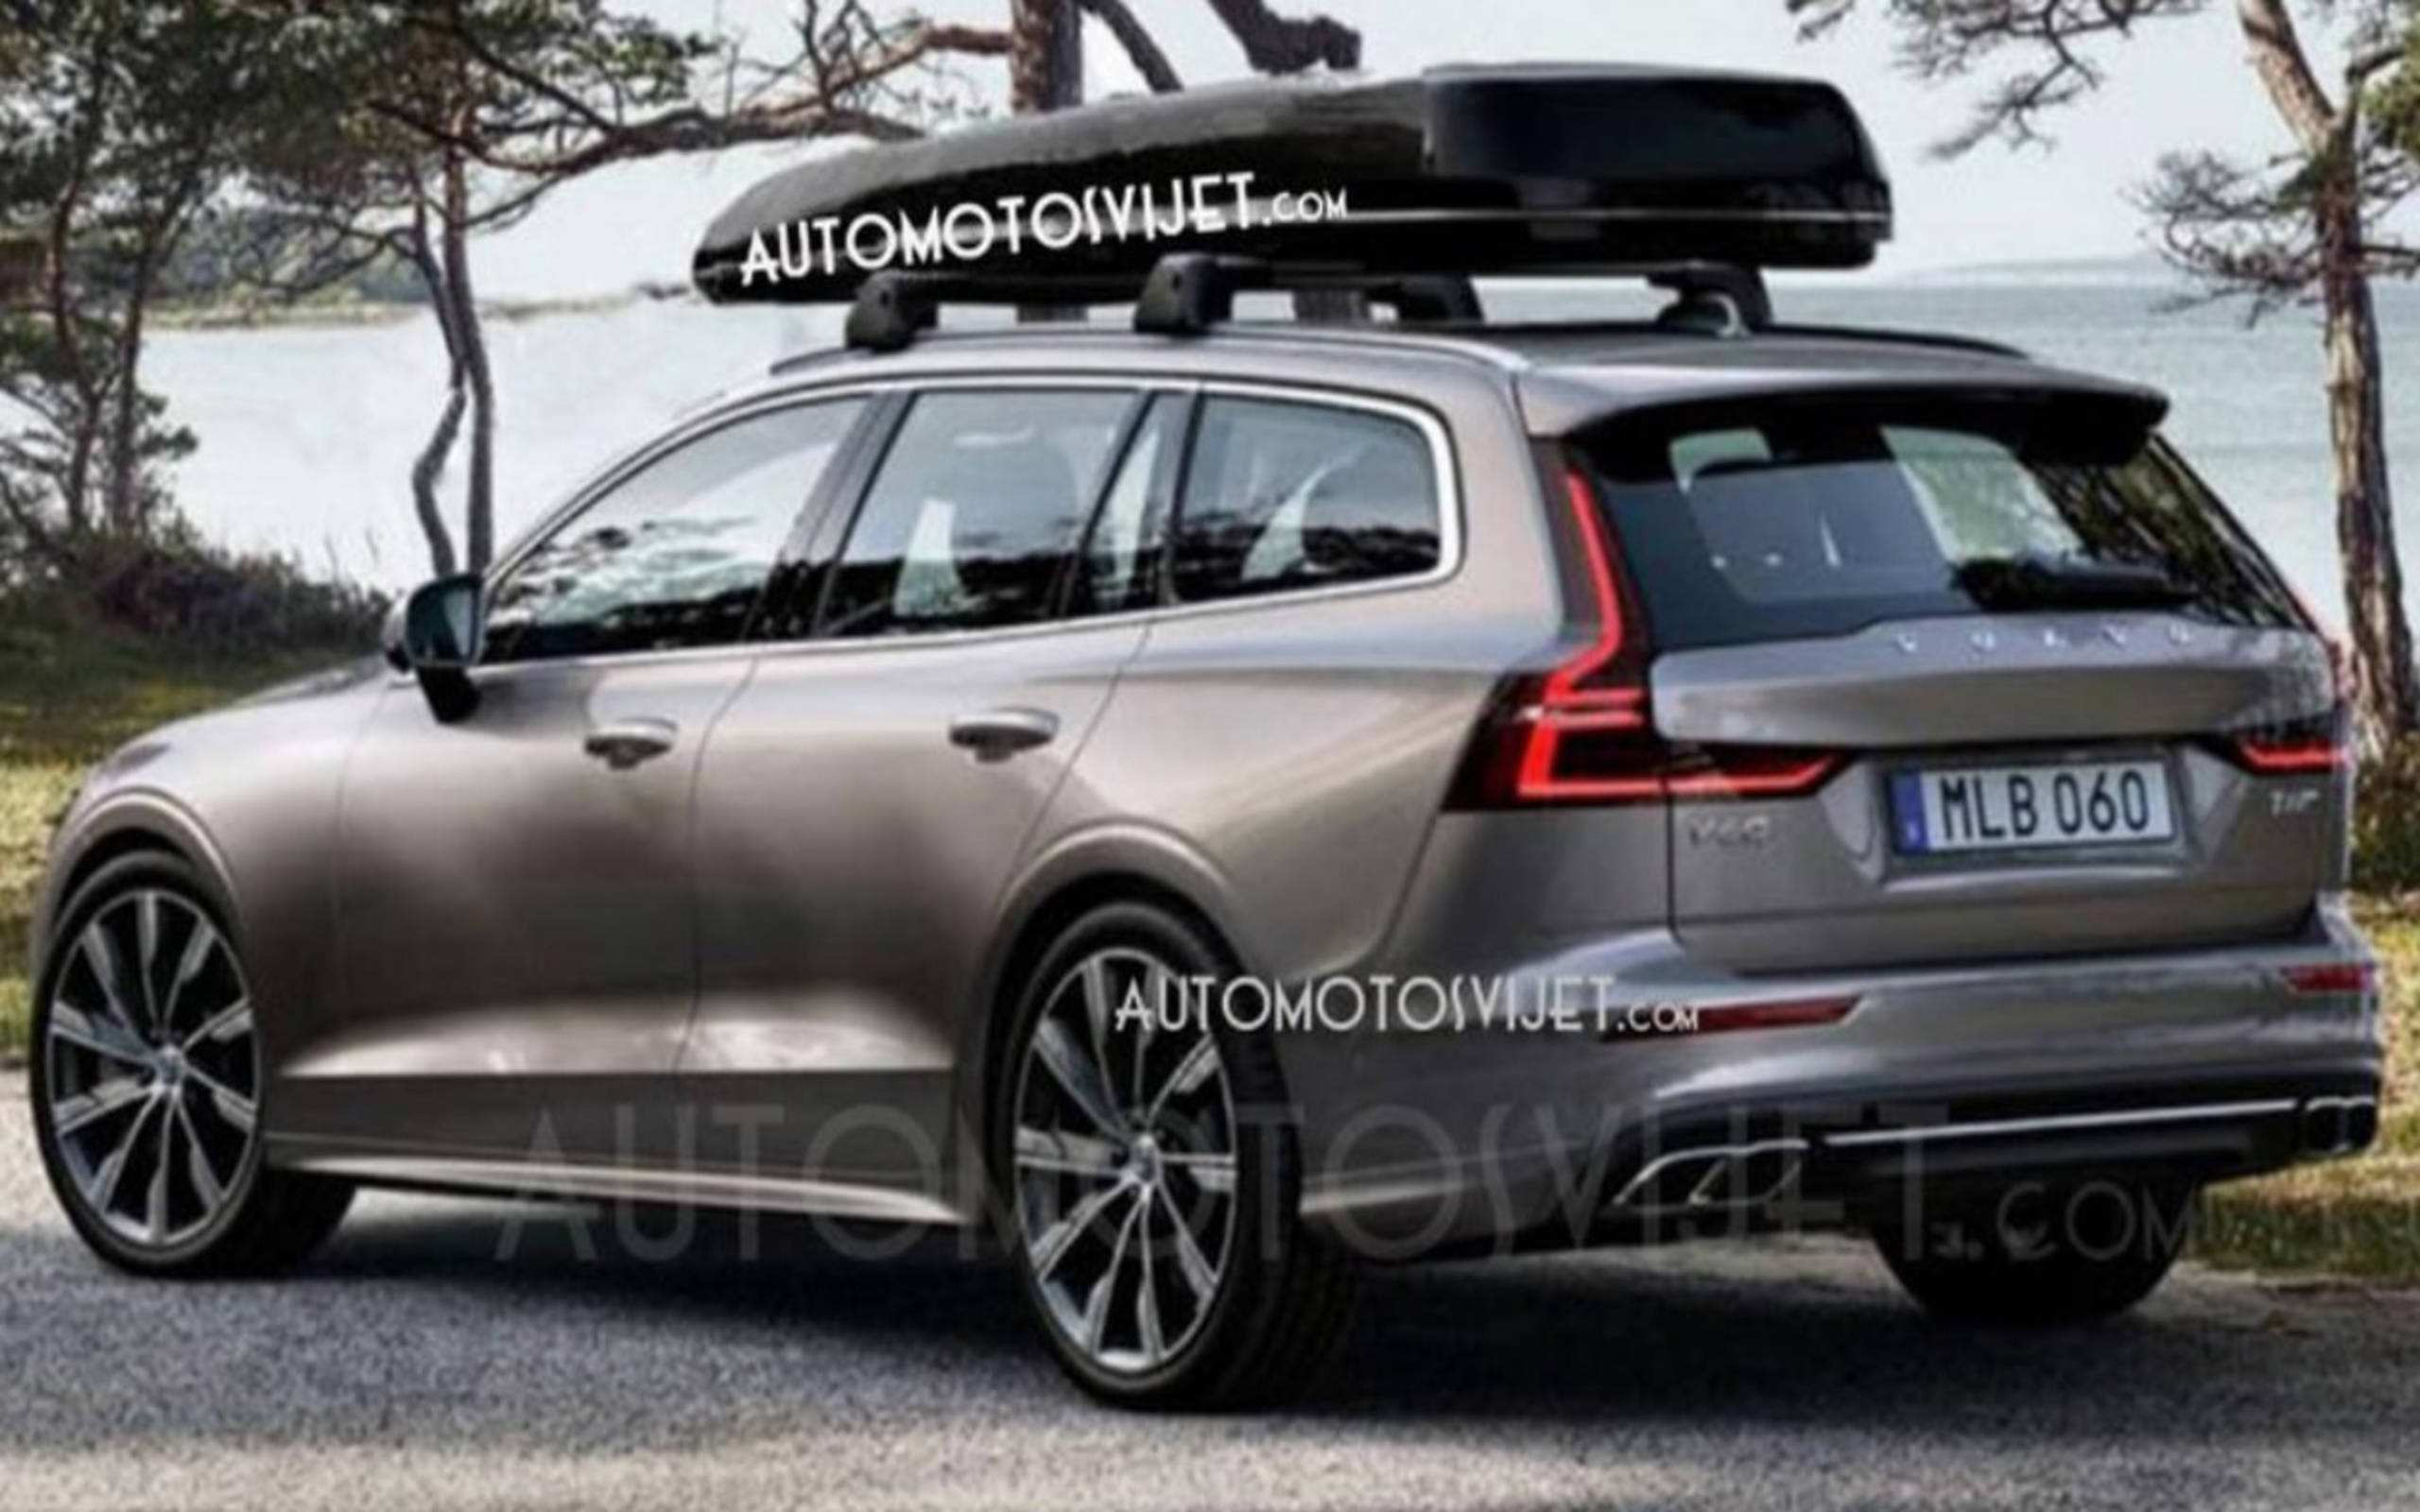 54 All New 2020 Volvo Xc70 New Generation Wagon Price